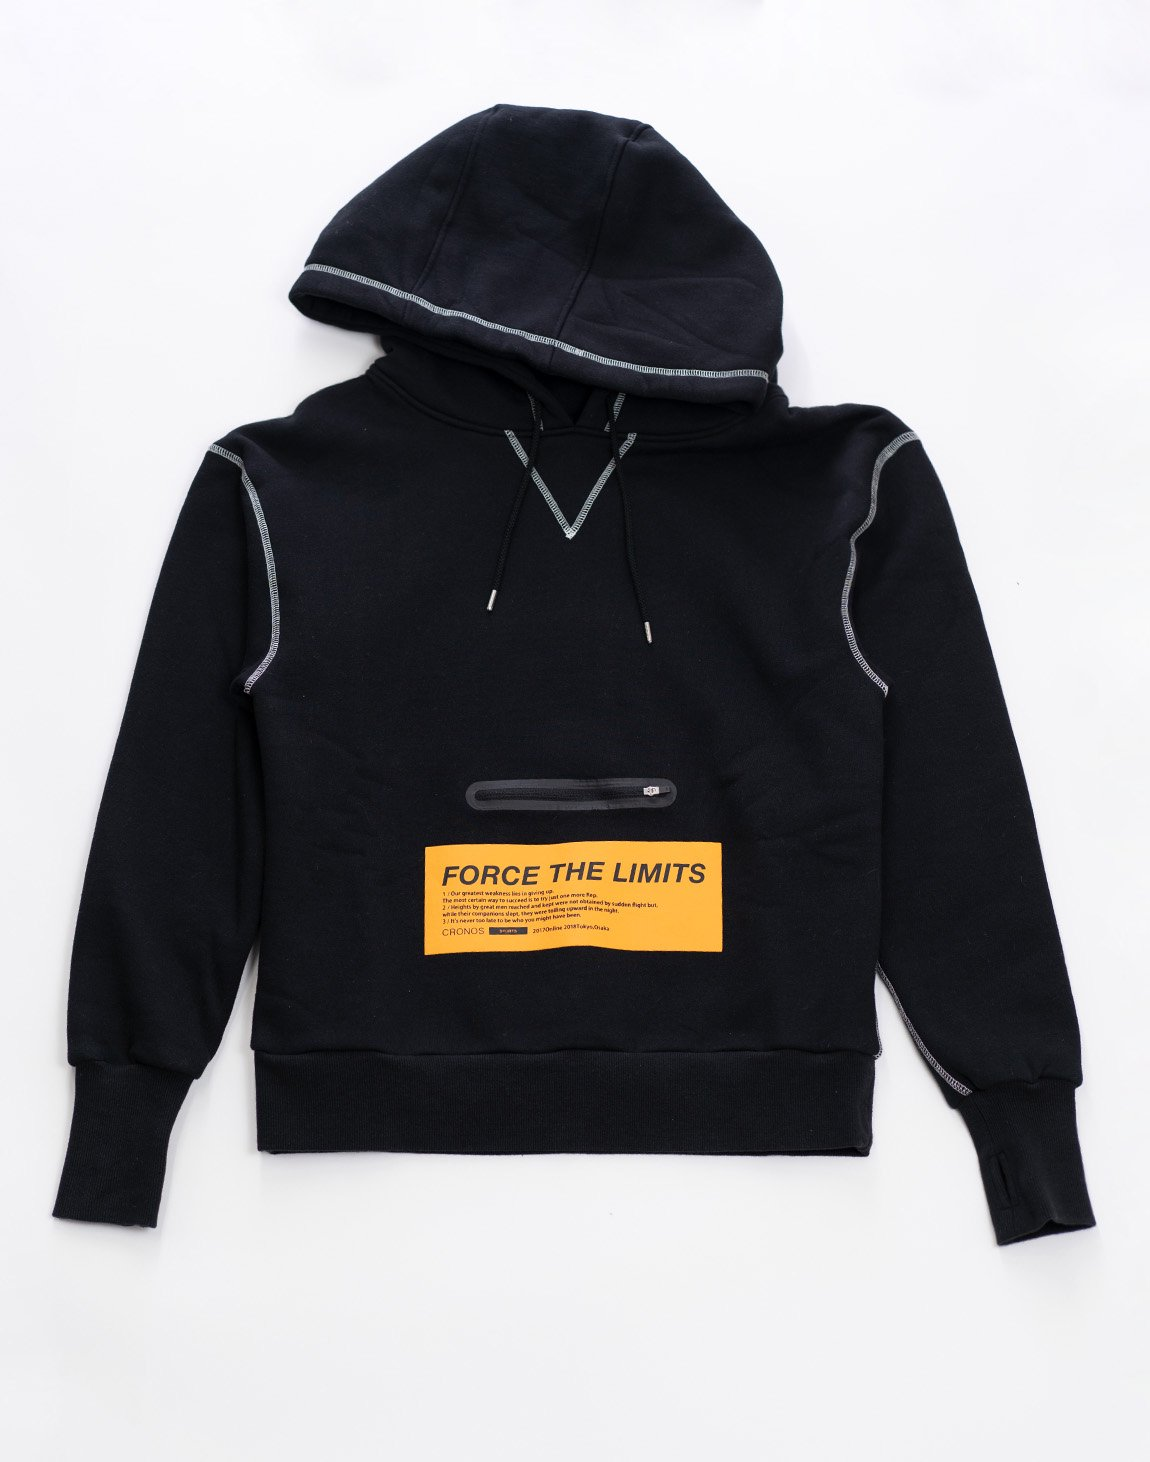 <img class='new_mark_img1' src='https://img.shop-pro.jp/img/new/icons1.gif' style='border:none;display:inline;margin:0px;padding:0px;width:auto;' />PK0015-SWEAT-PARKA-BLACK